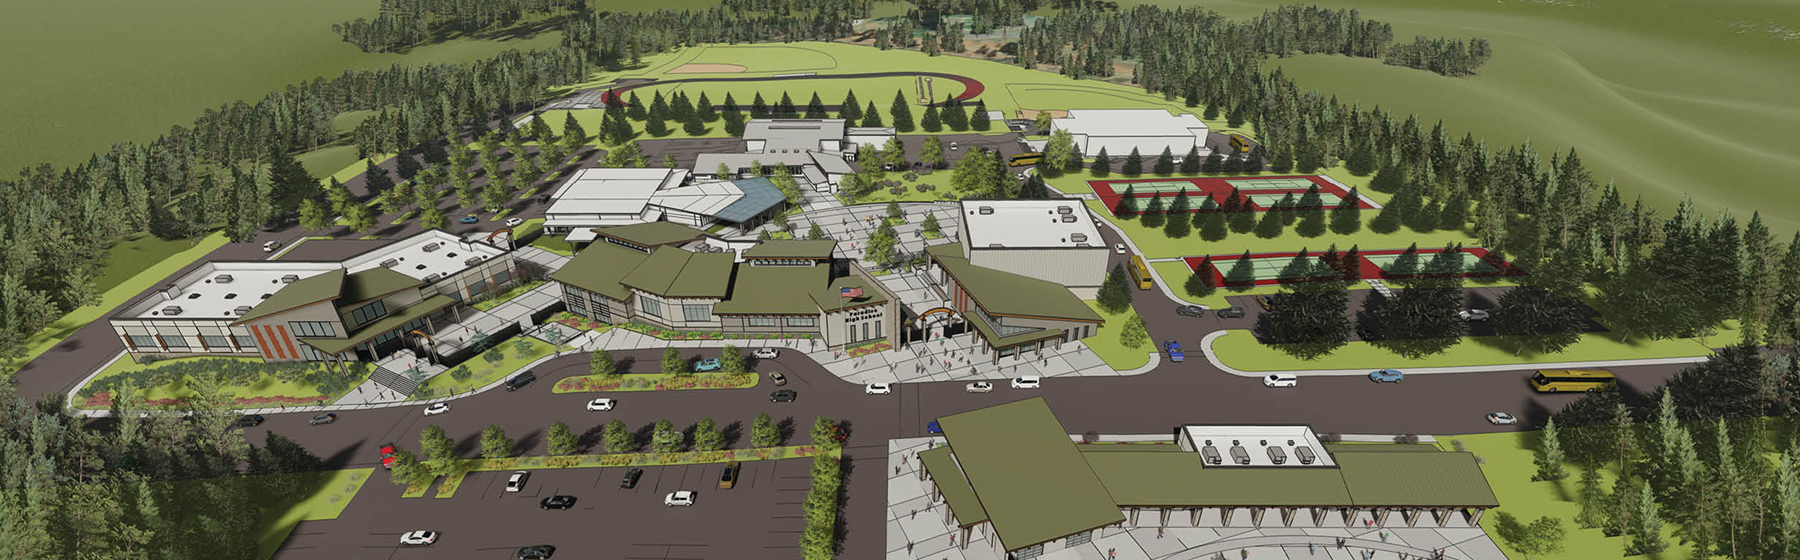 Paradise Unified School District Board Unanimously Approves Revised Facilities Master Plan